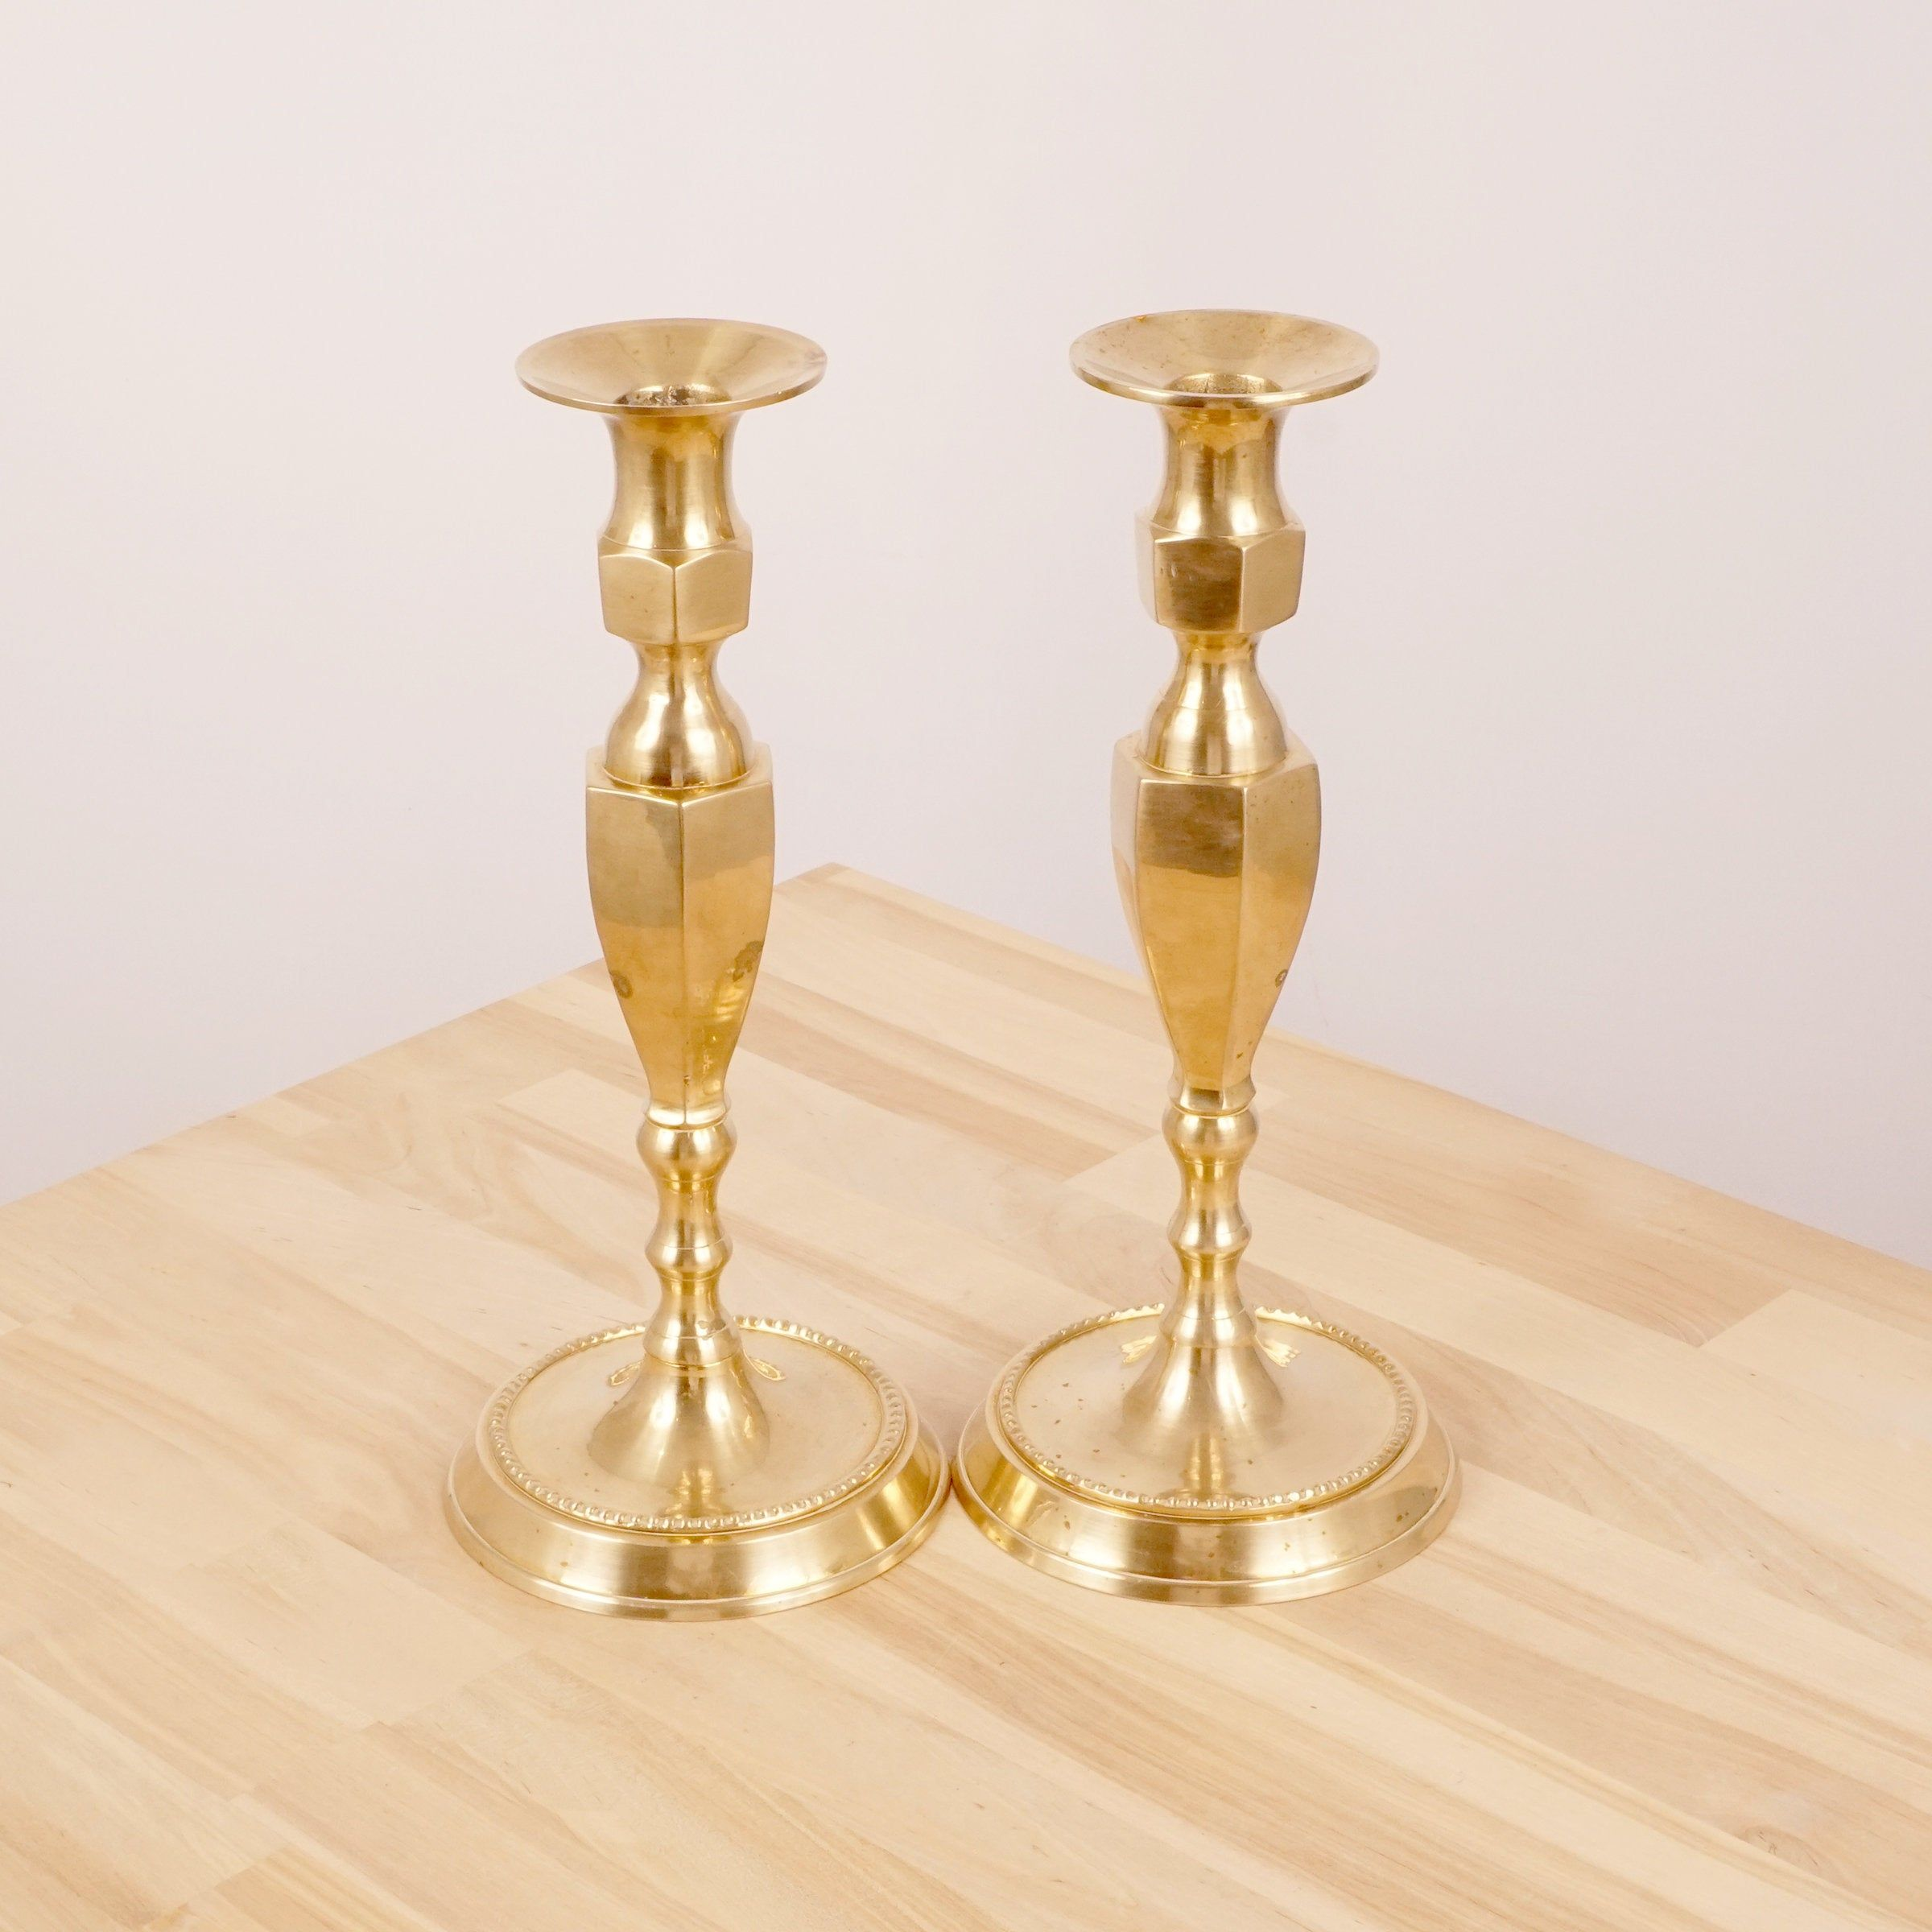 Heavy candle holders Candle  Candlestick holders Antique solid brass set of two